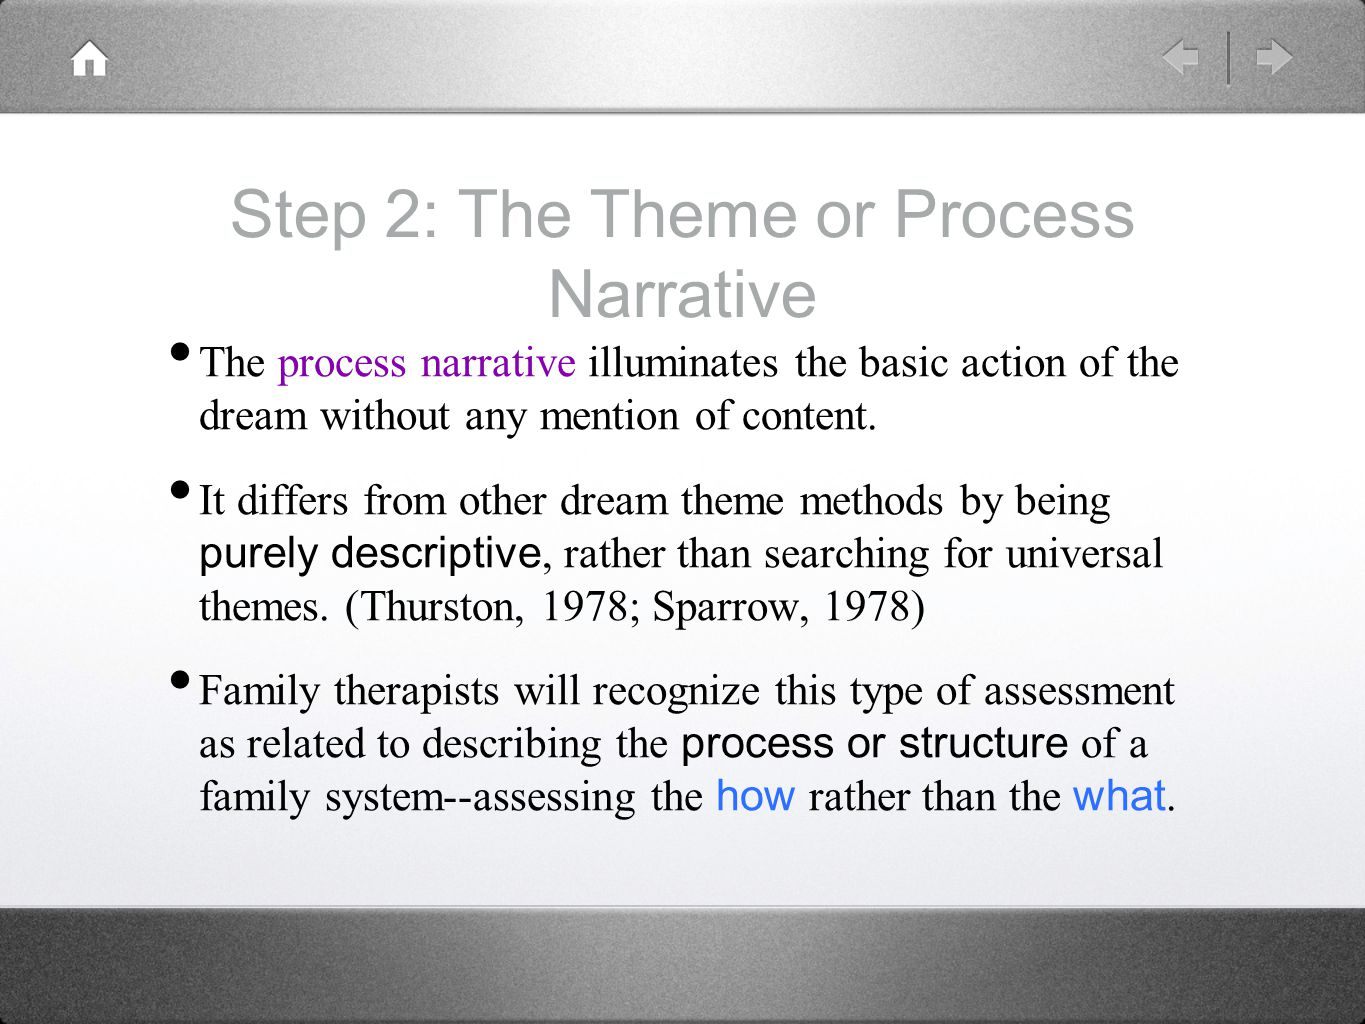 The process narrative illuminates the basic action of the dream without any mention of content. It differs from other dream theme methods by being pur